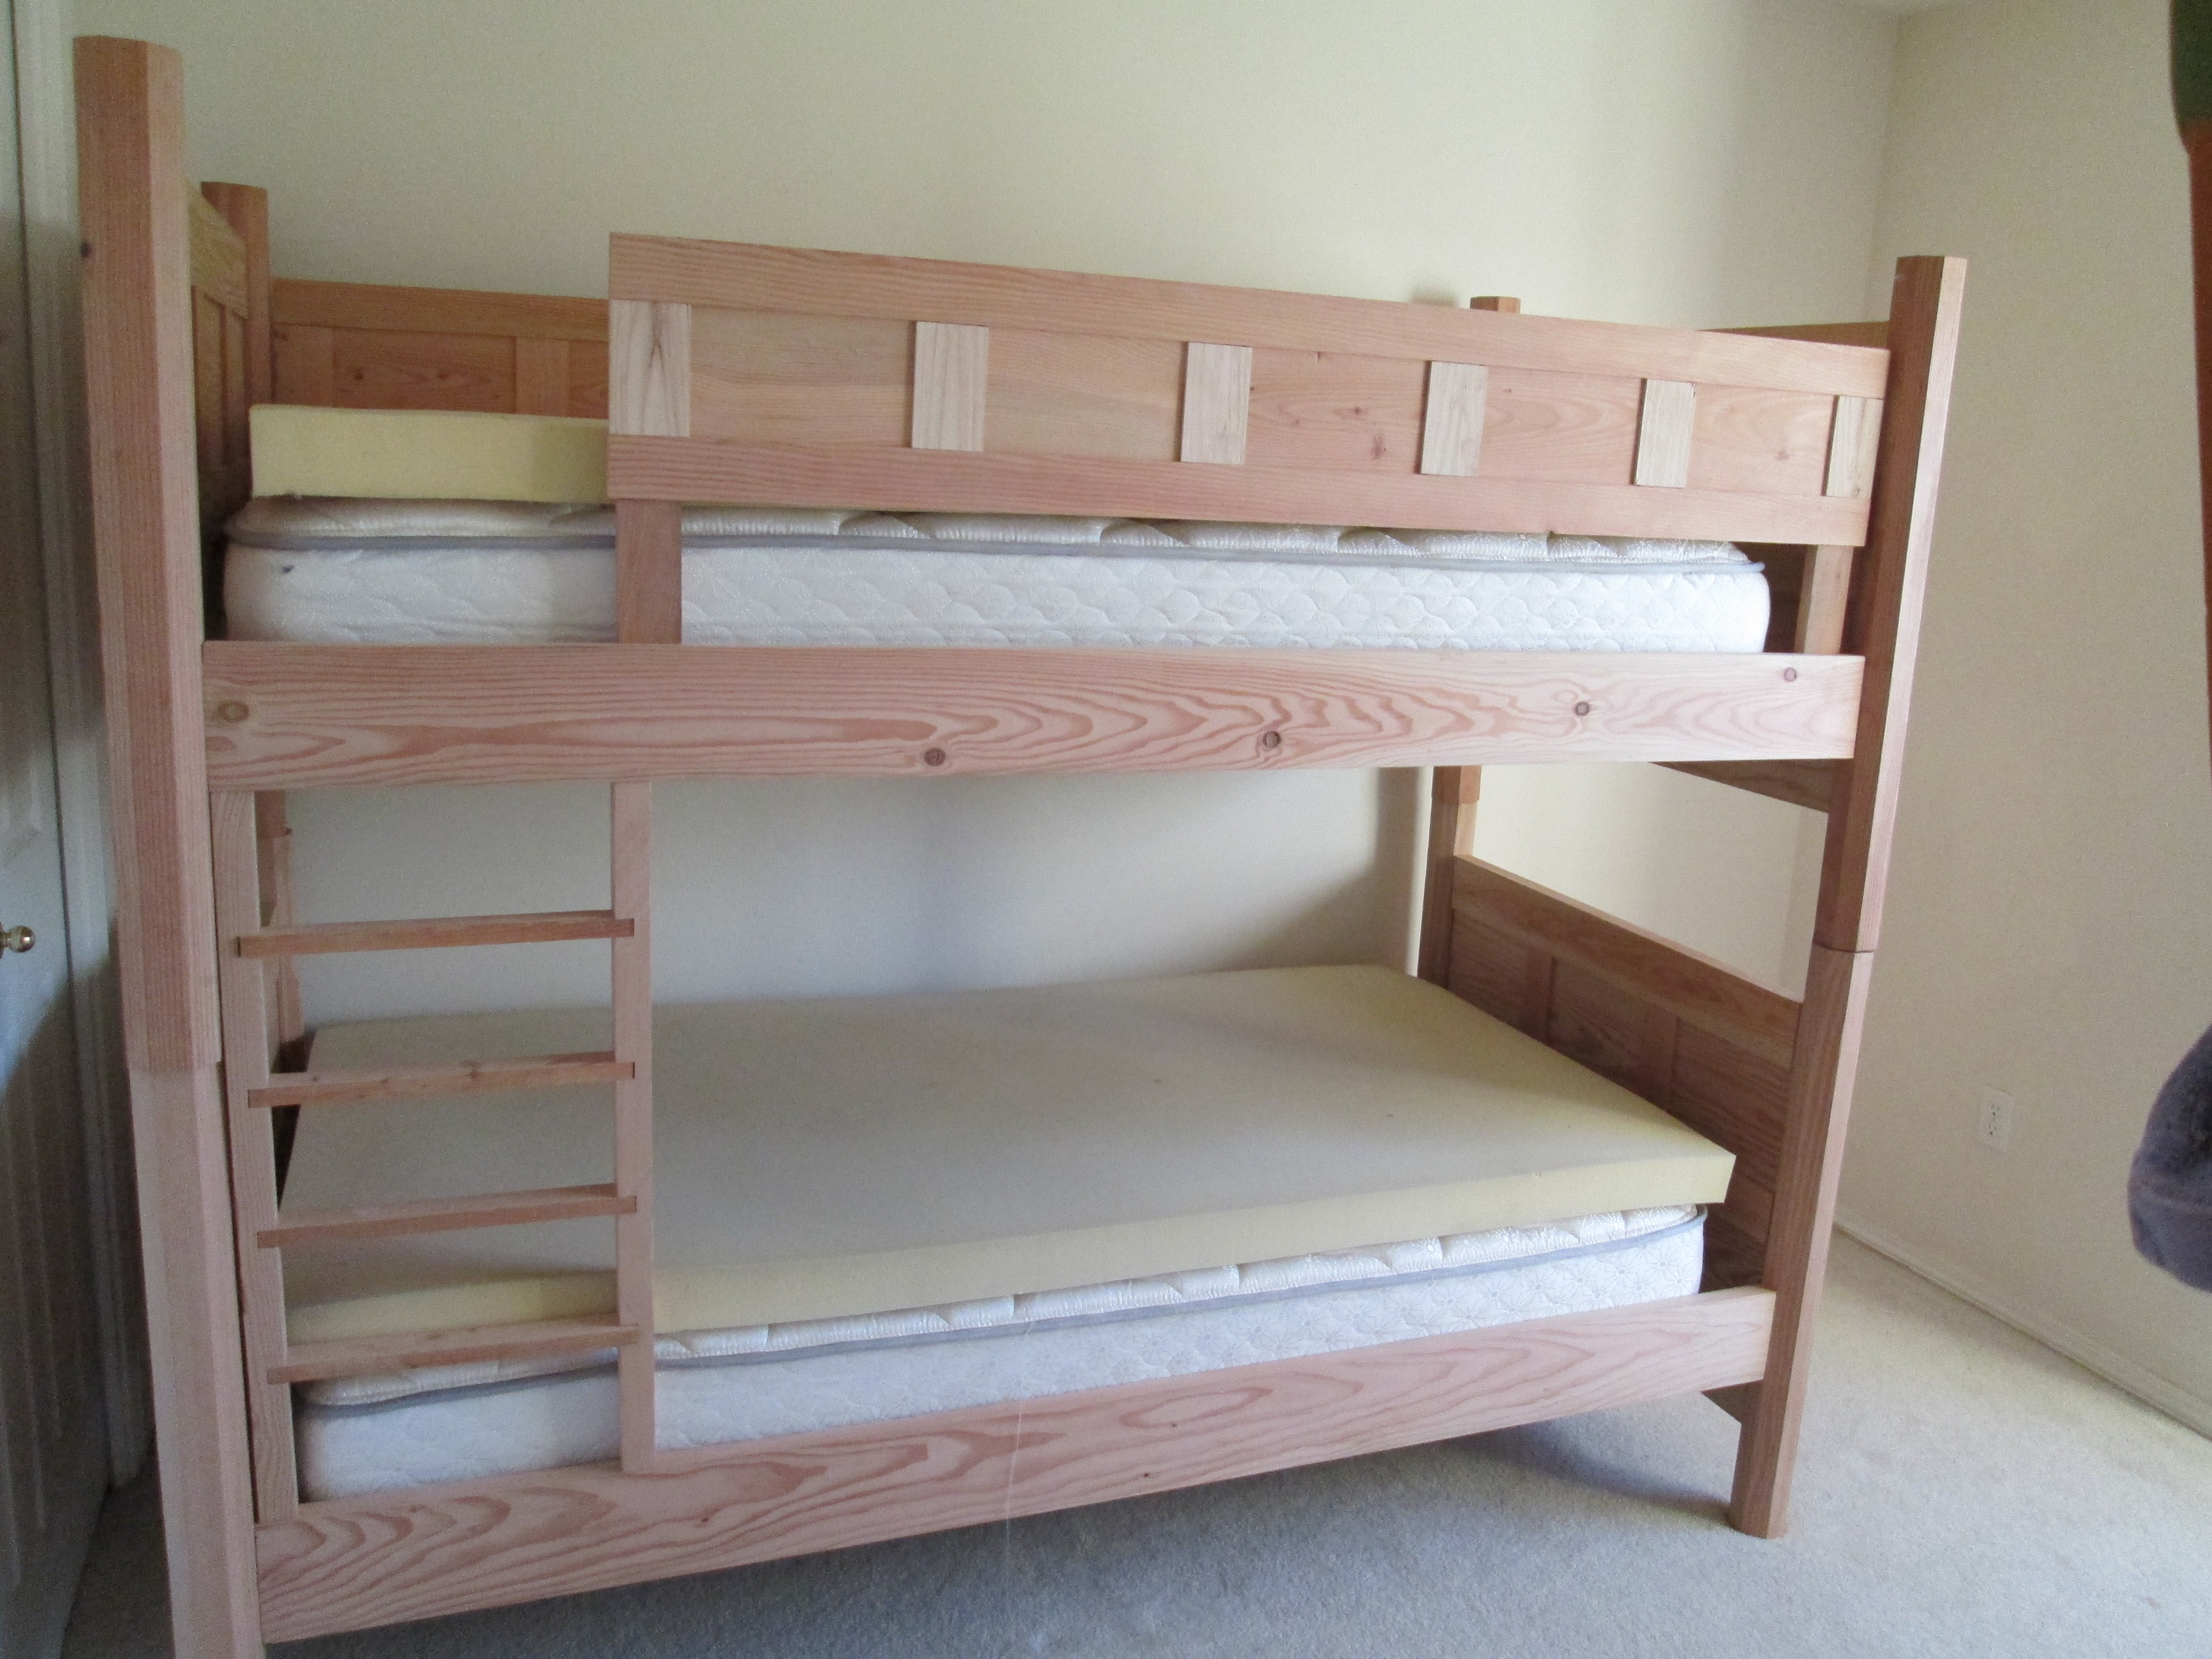 Spectacular I have been making quality bunk beds of solid wood for a quarter of a century